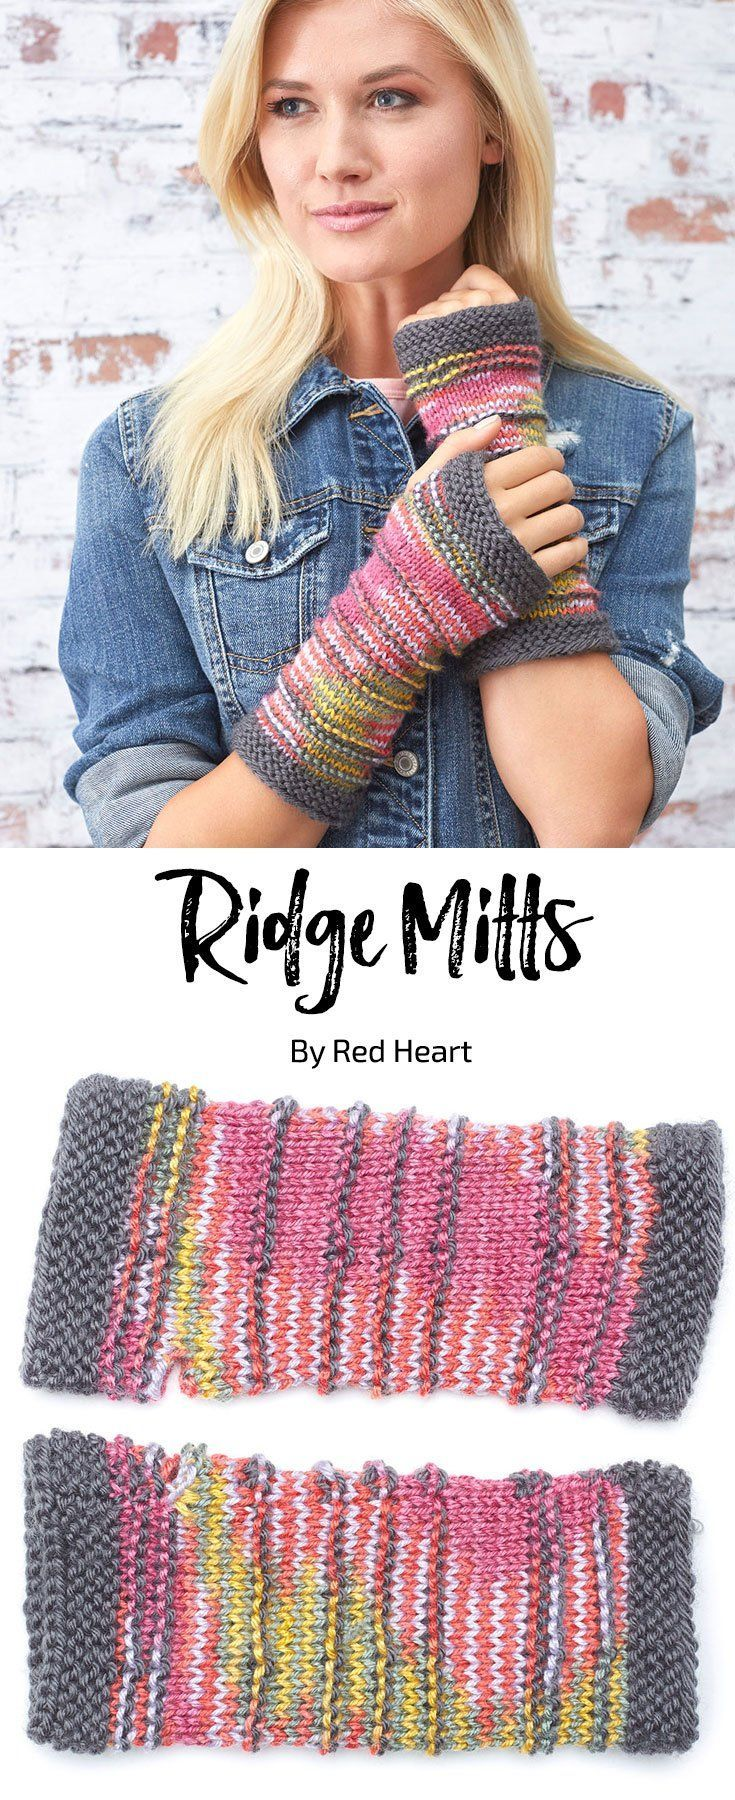 Ridge Mitts free knit pattern in Soft yarn. Knitting mitten pattern.